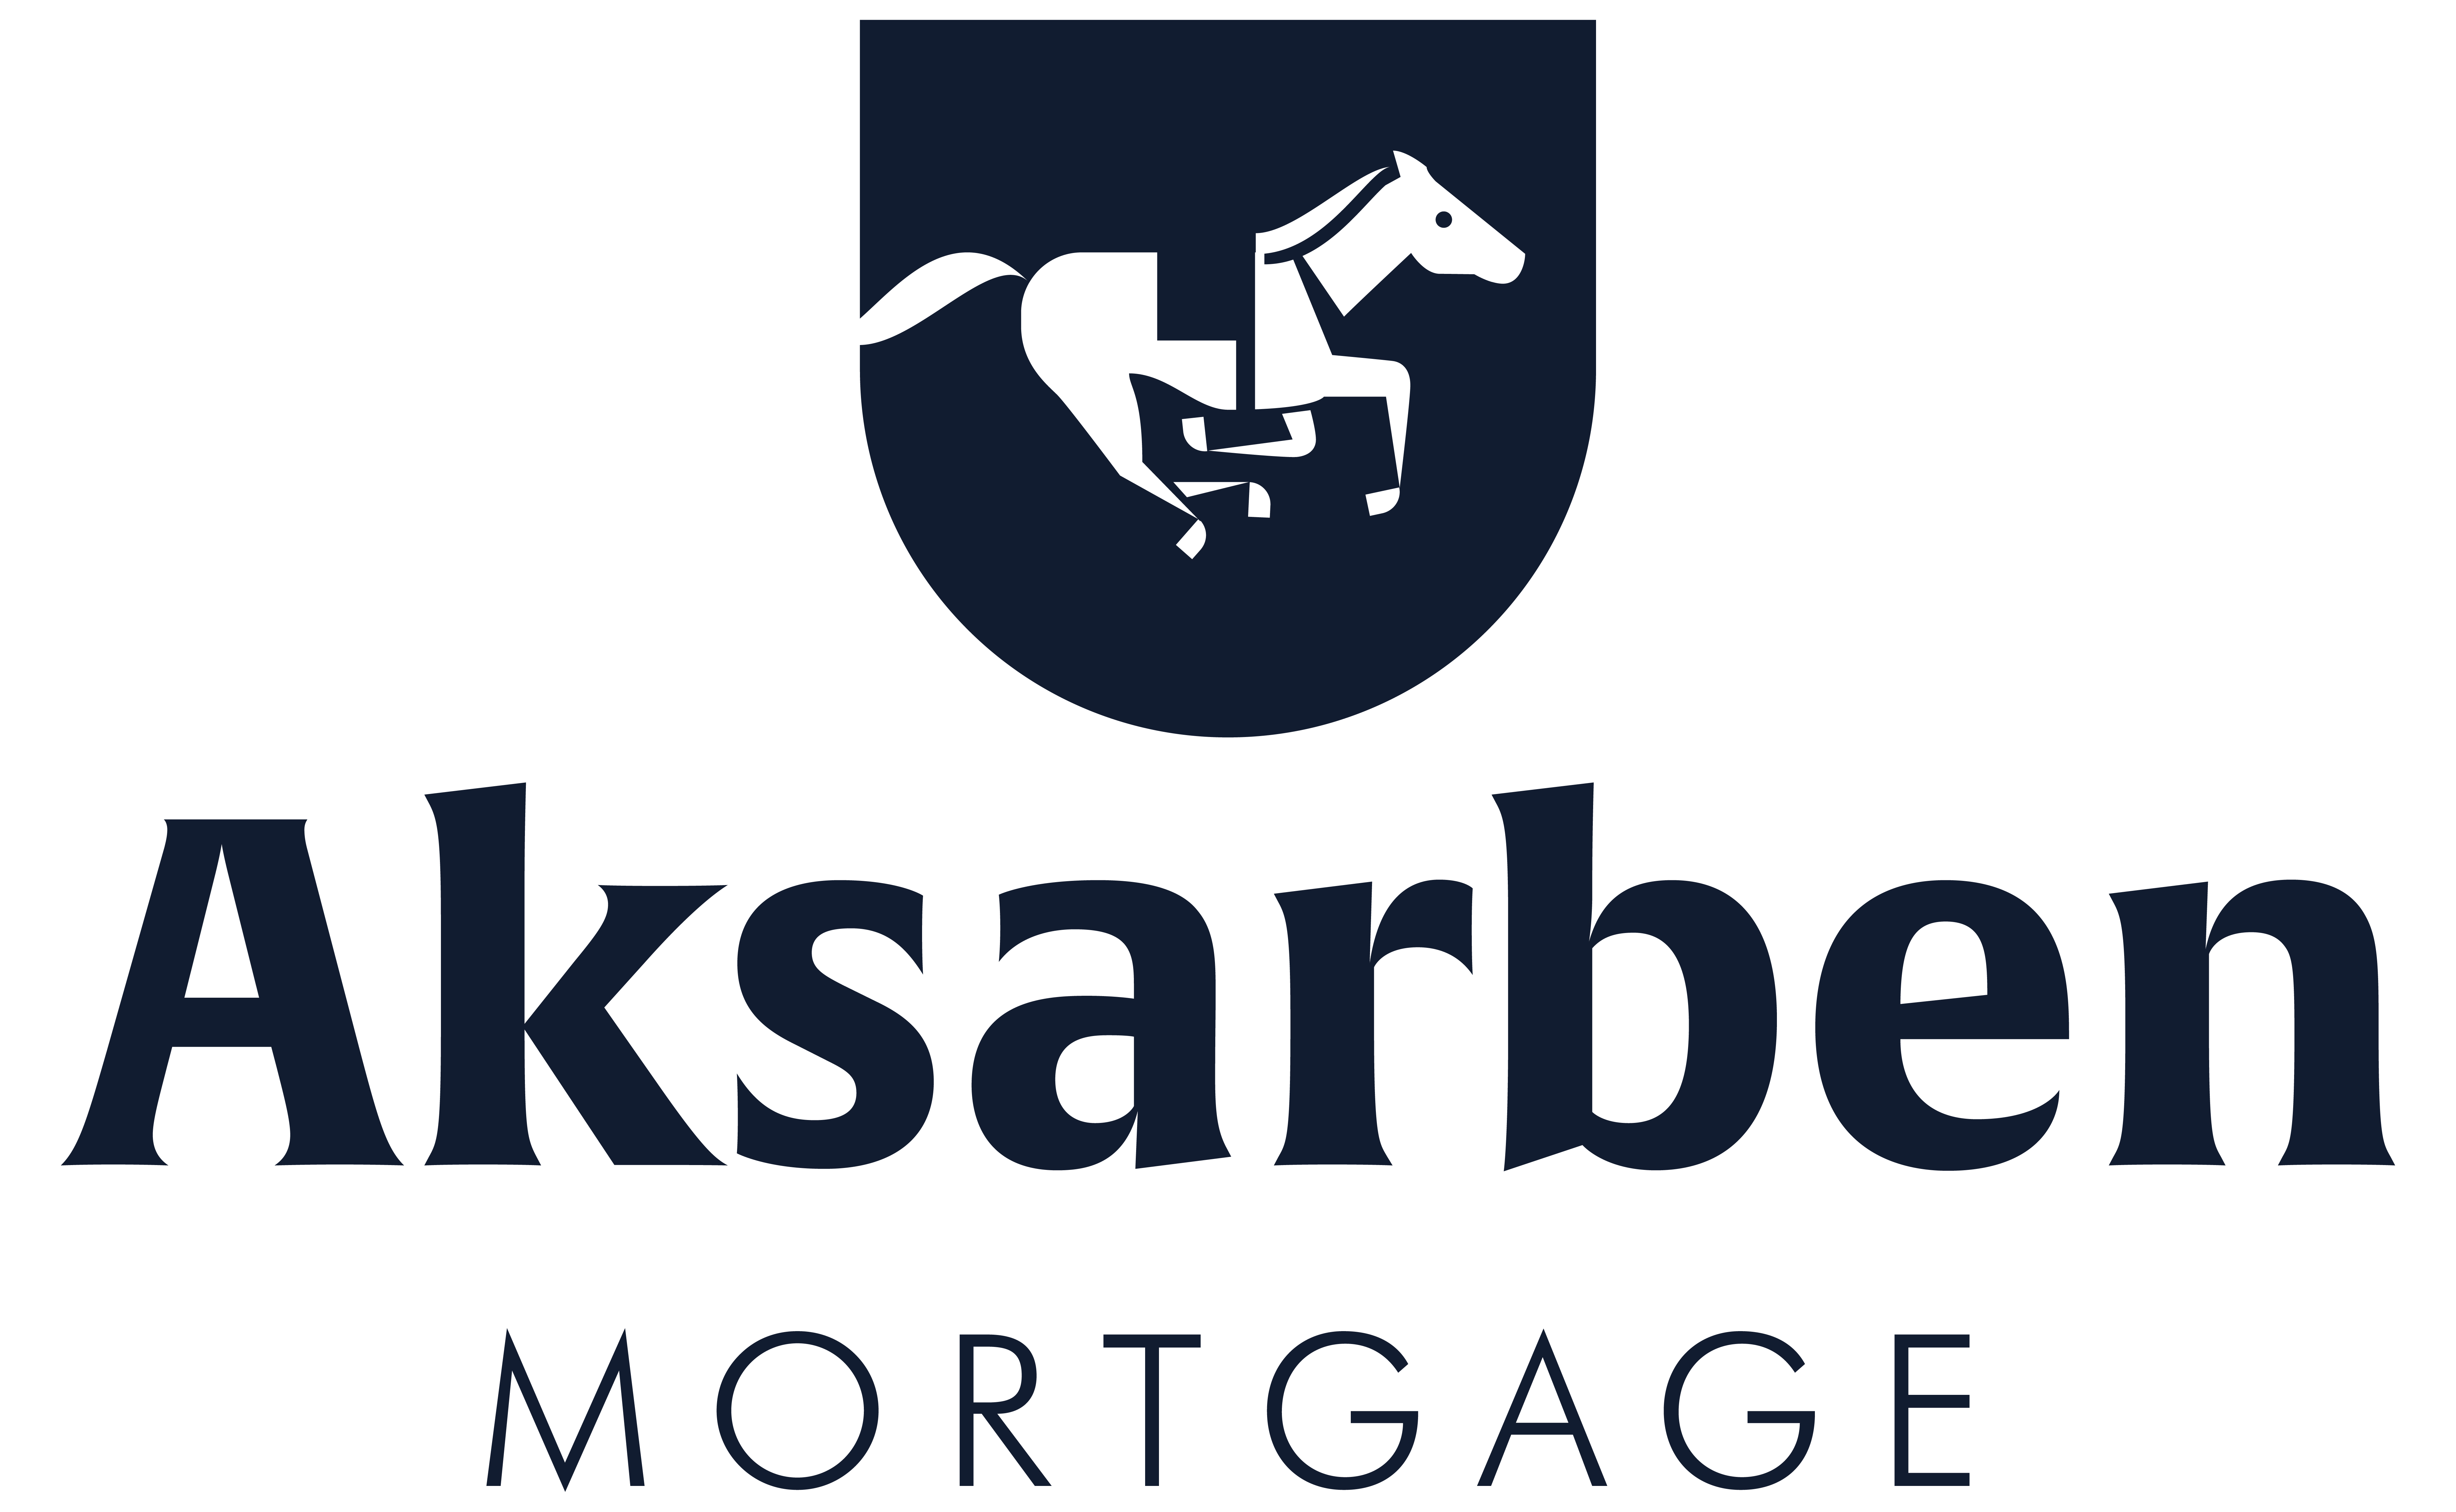 Aksarben Mortgage: Experience Your Good Life